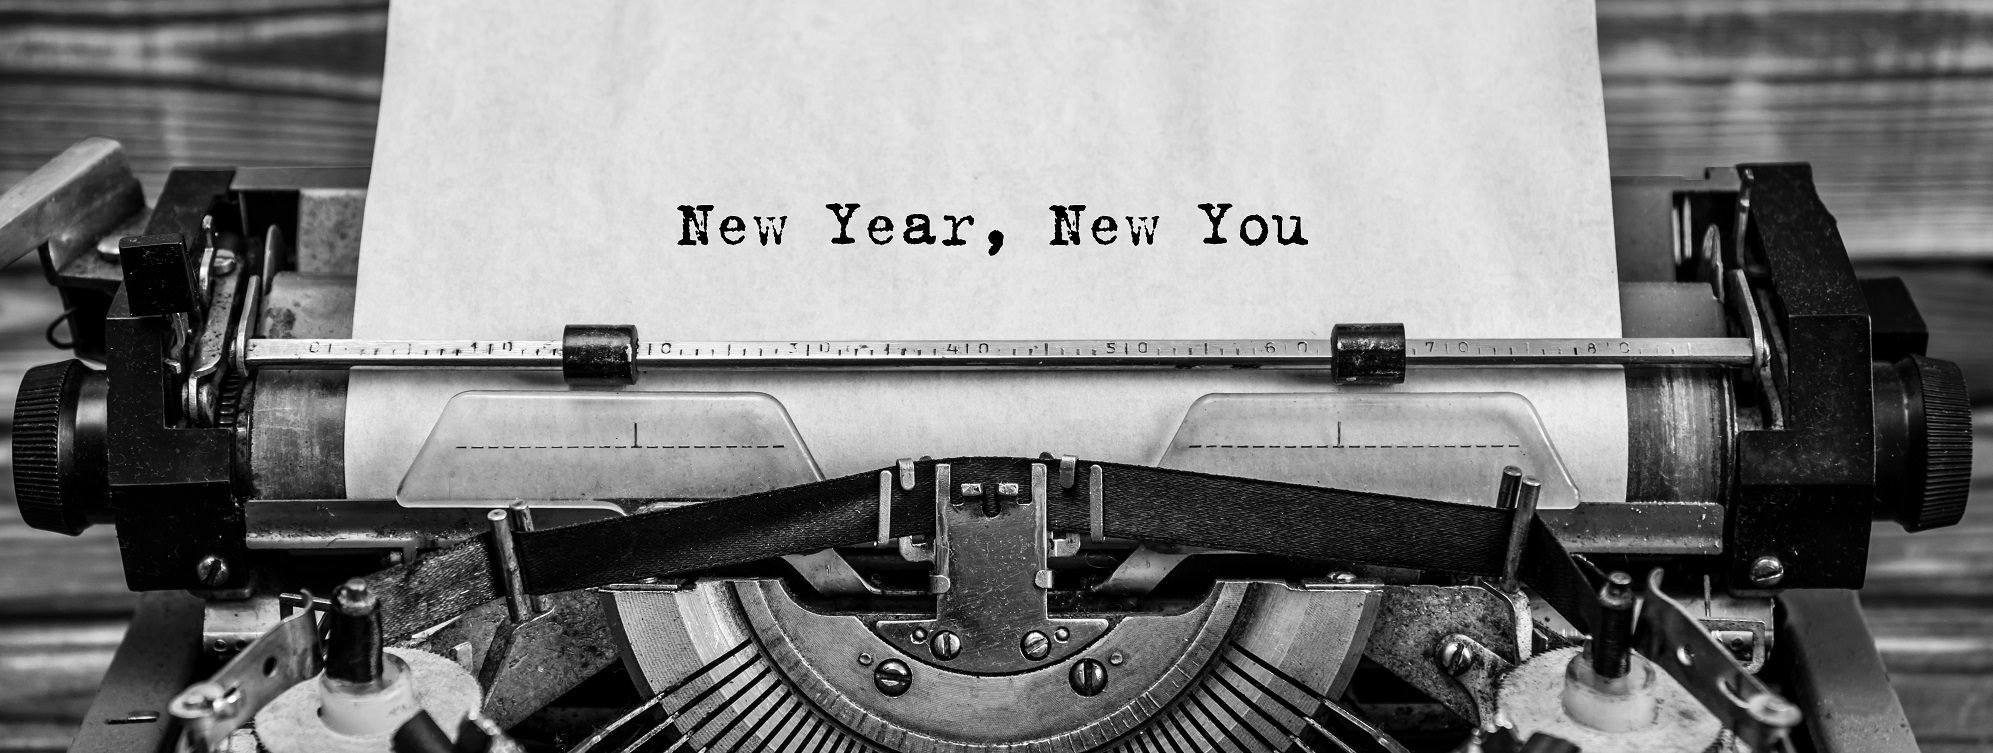 typewriter with new year new you text on the paper